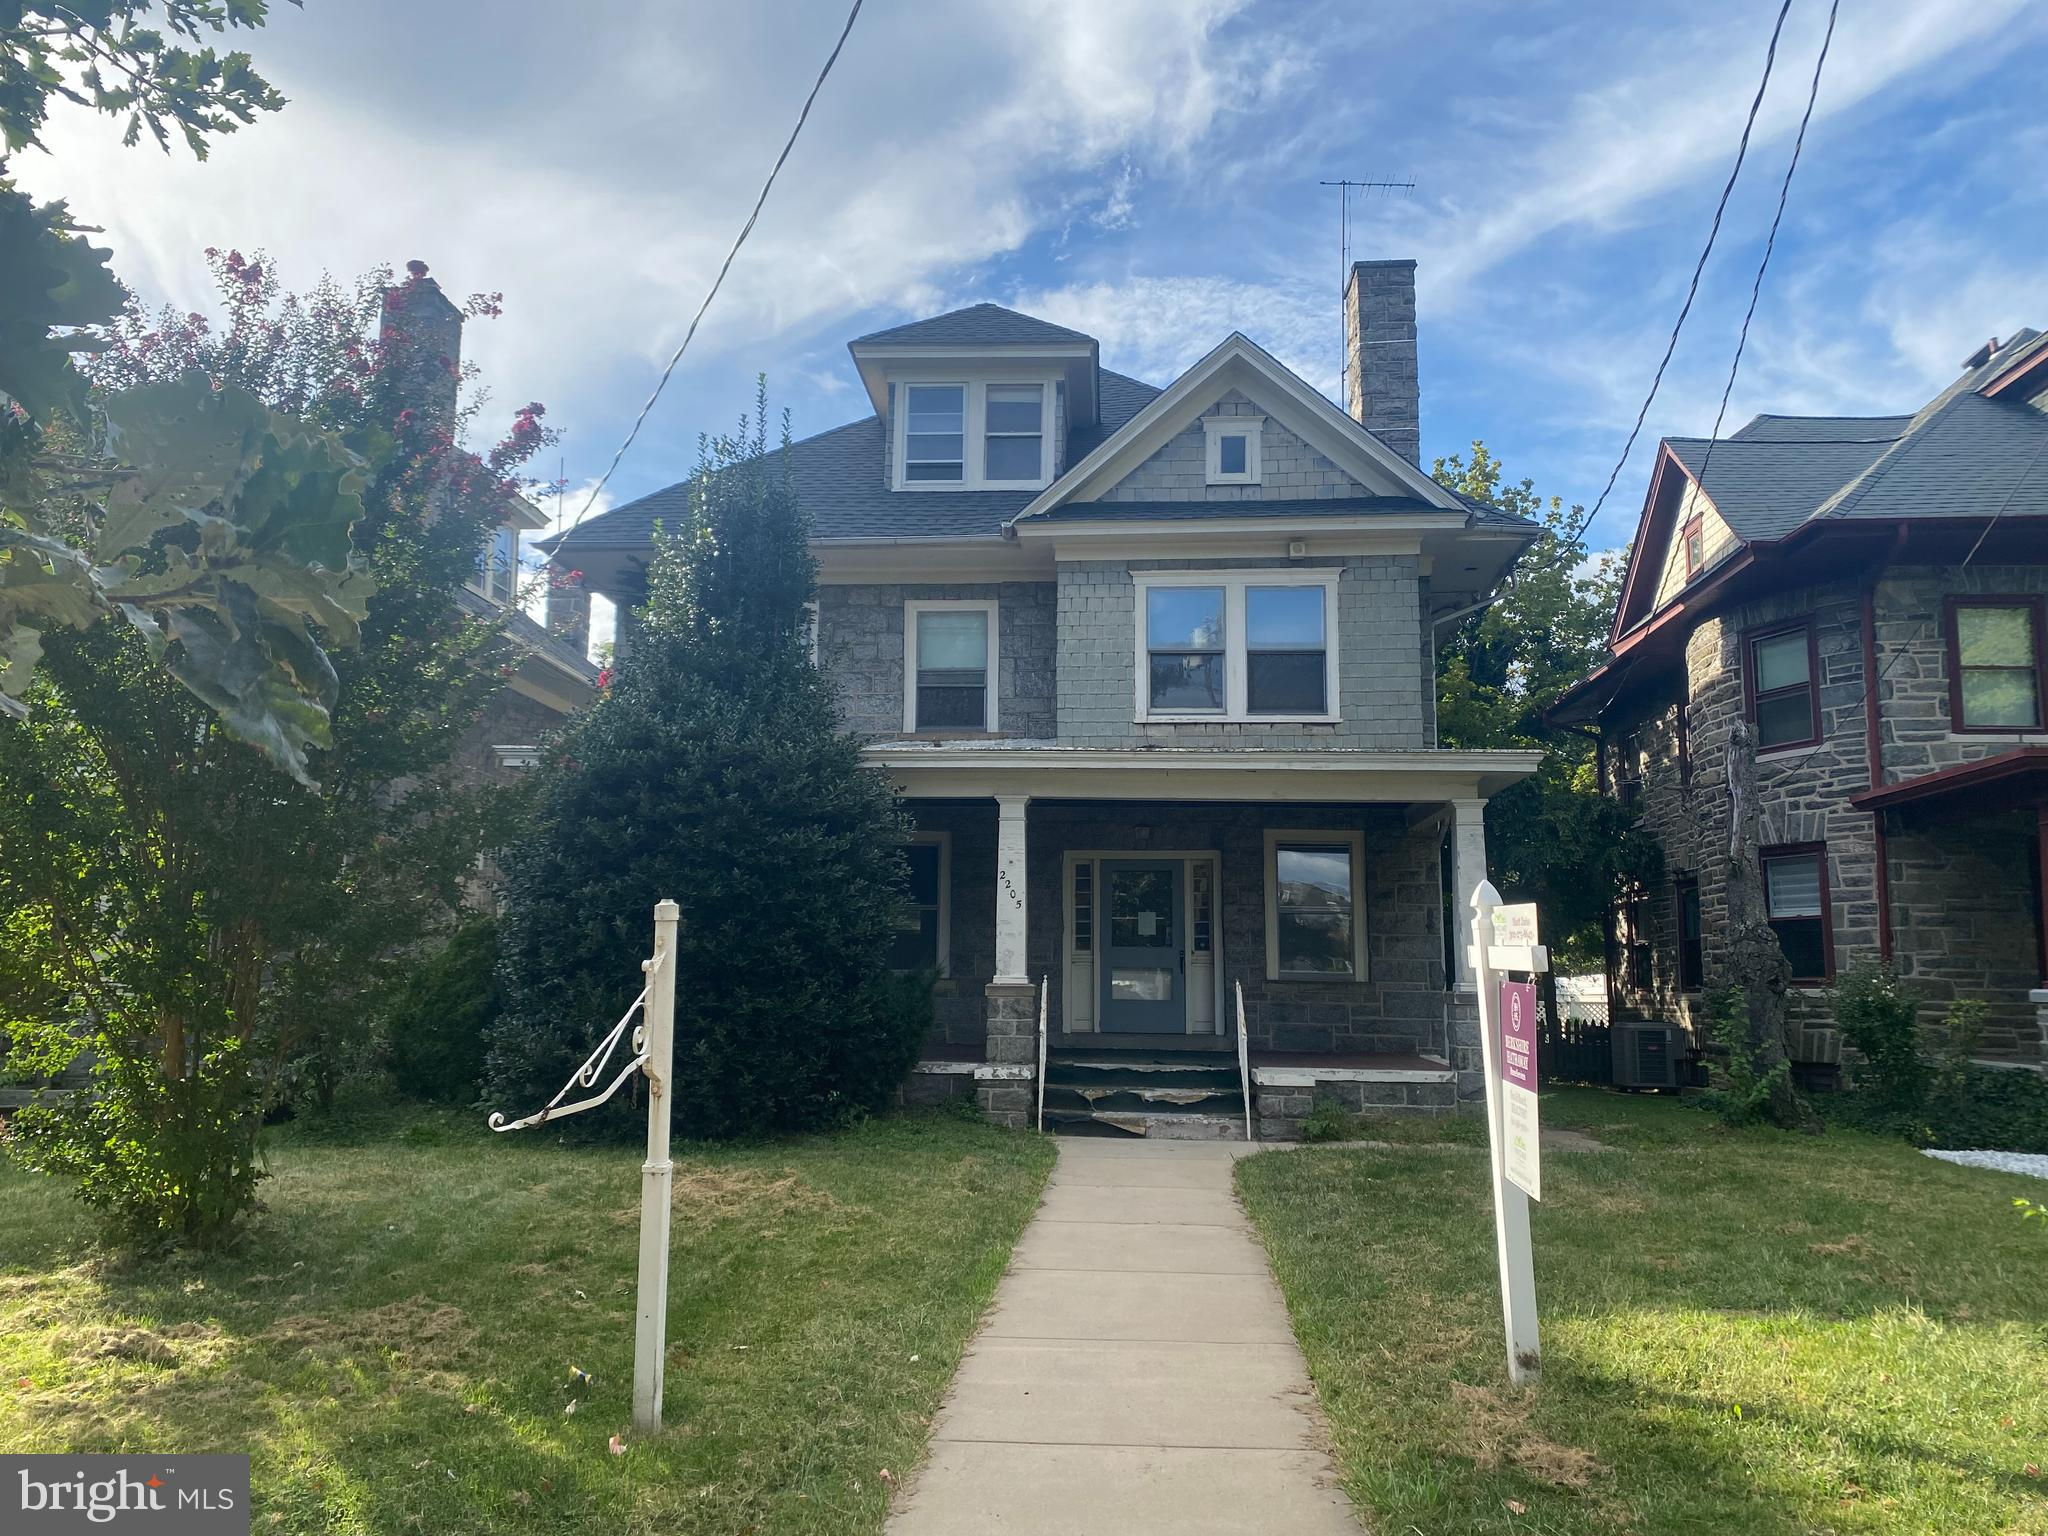 Investor Alert!! This property is in need of a major rehab. Please note that utilities, including electric, are off.  Bring your ideas and vision to give this turn of the century colonial another life! Zoned for both residential and commercial use  and was a longtime doctor's office.  Schedule your tour today!